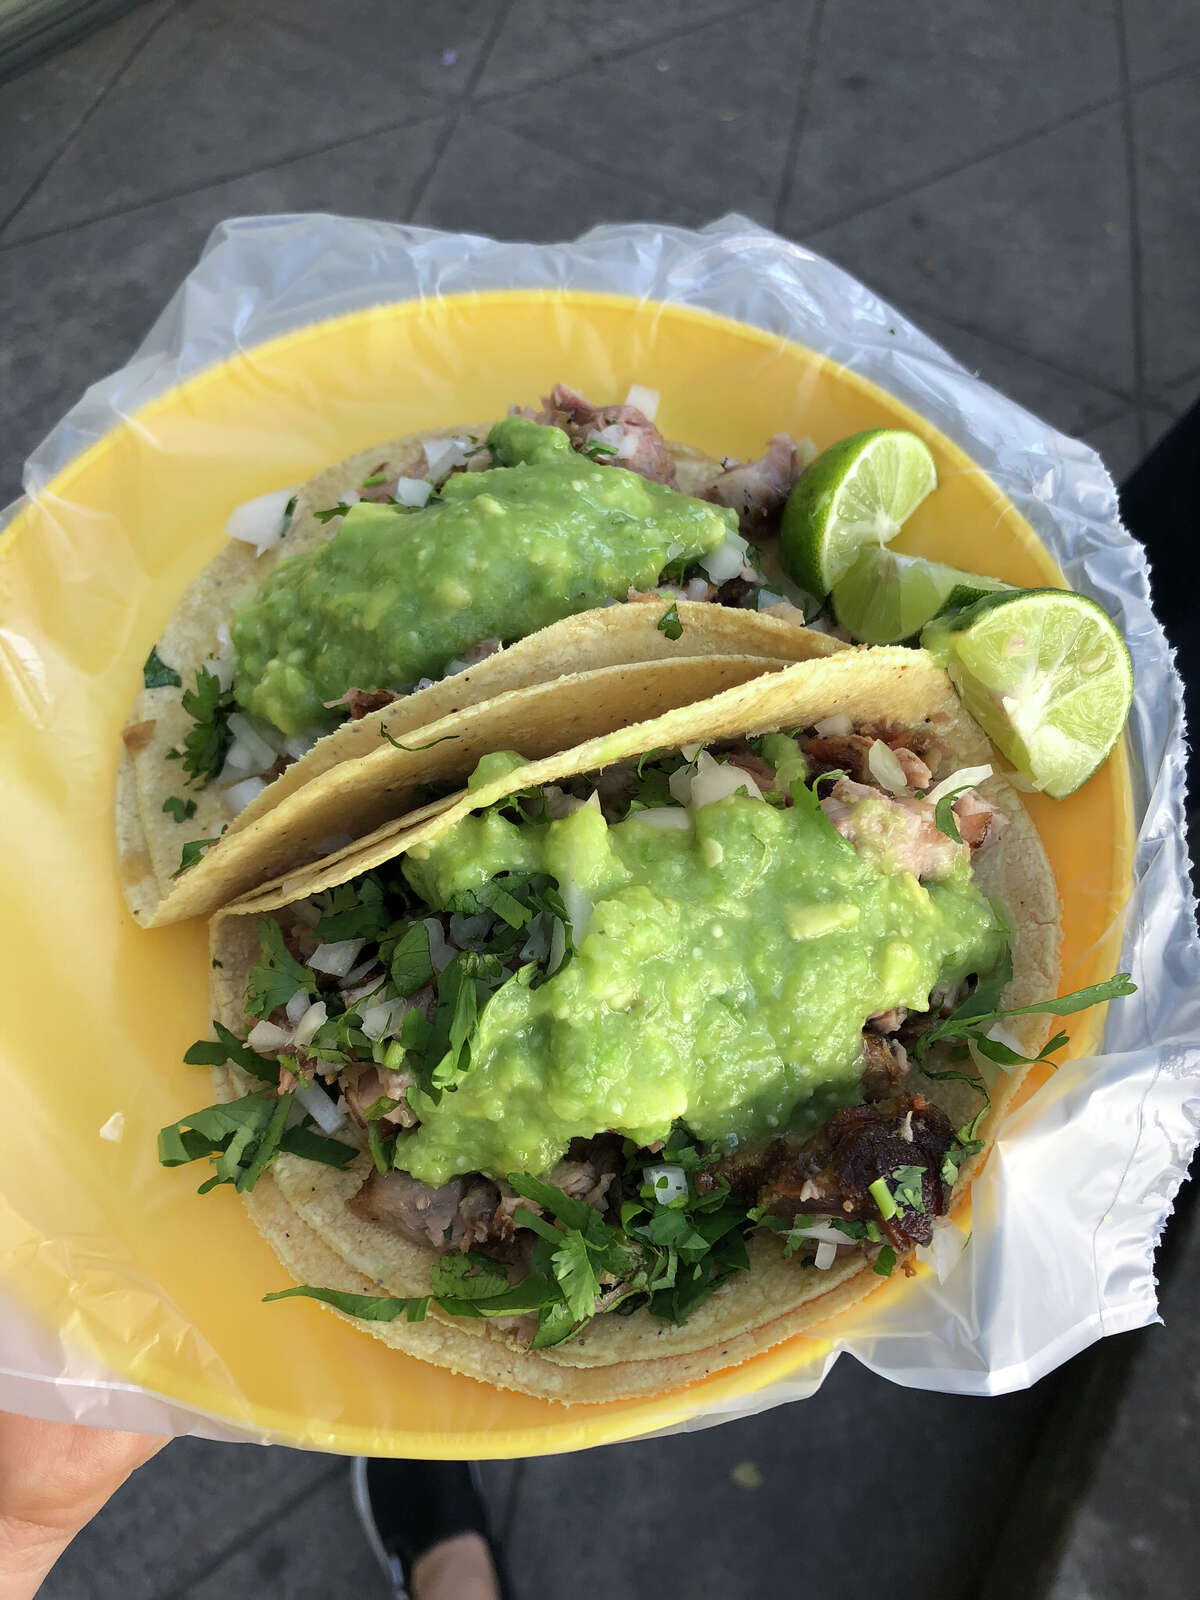 The carnitas tacos at Tacos Don Juan in Condesa. They're only available there Fridays and Saturdays.